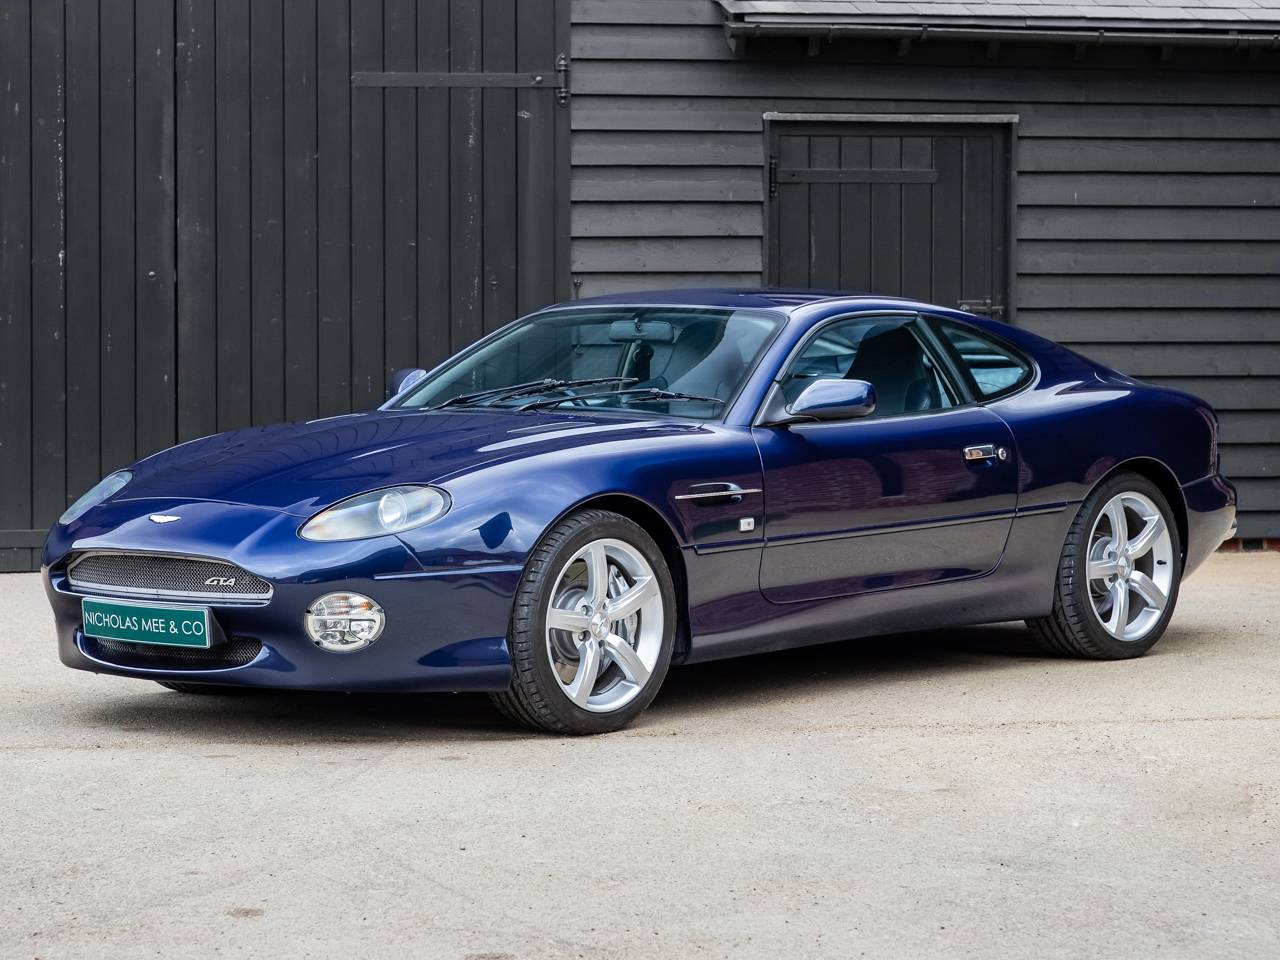 Aston Martin DB 7 GTA